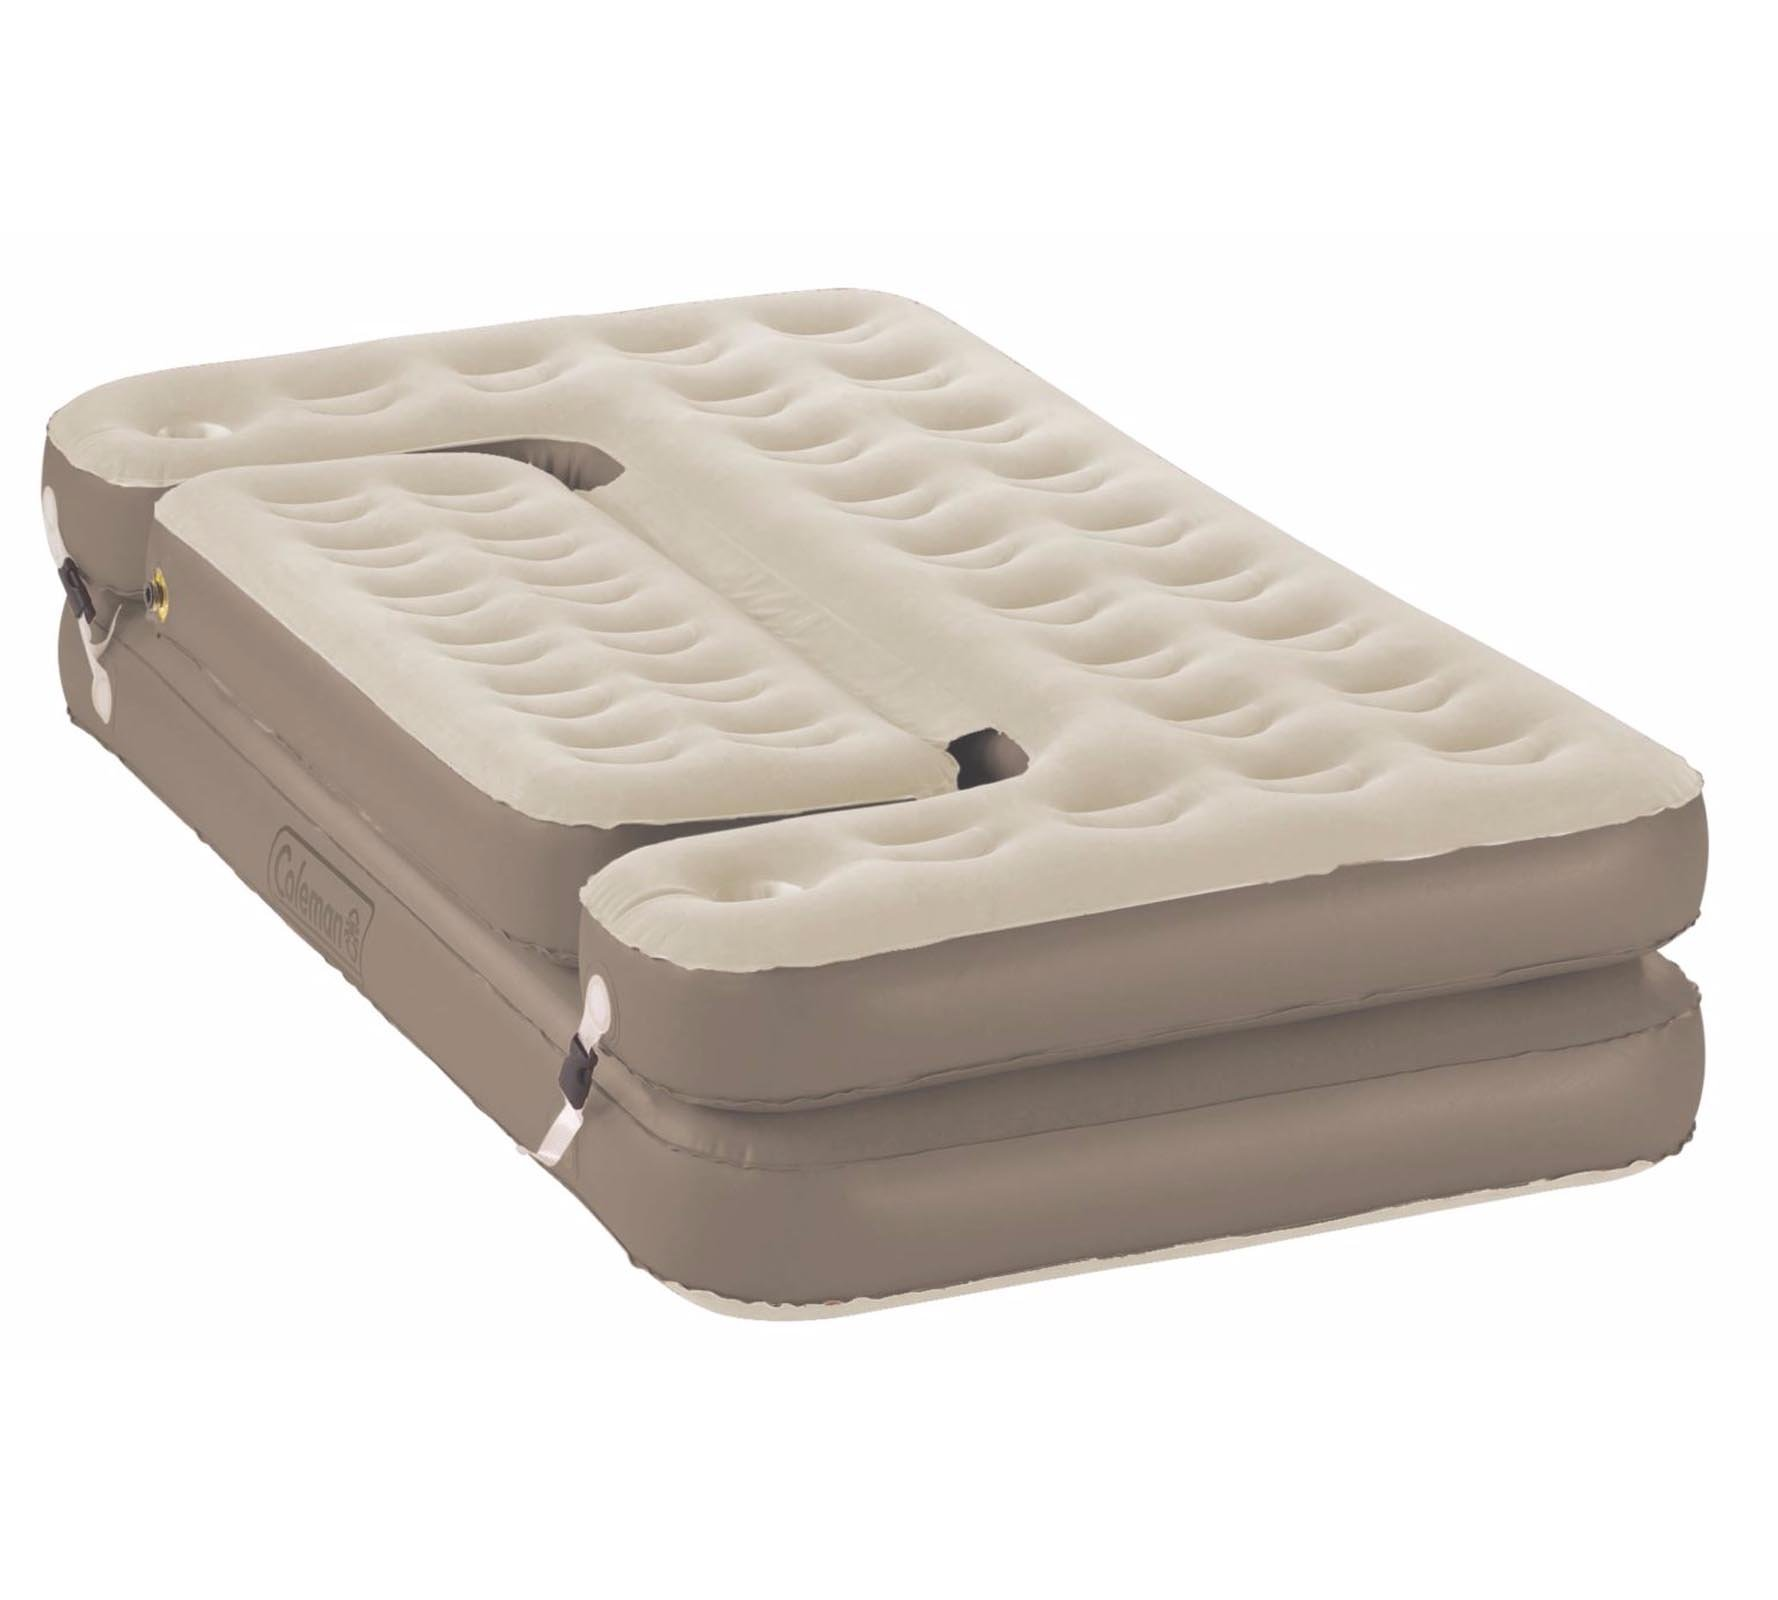 NEW! COLEMAN Premium 5-in-1 Twin/King PVC Quickbed Airbed Mattress & Hide-A-Sofa